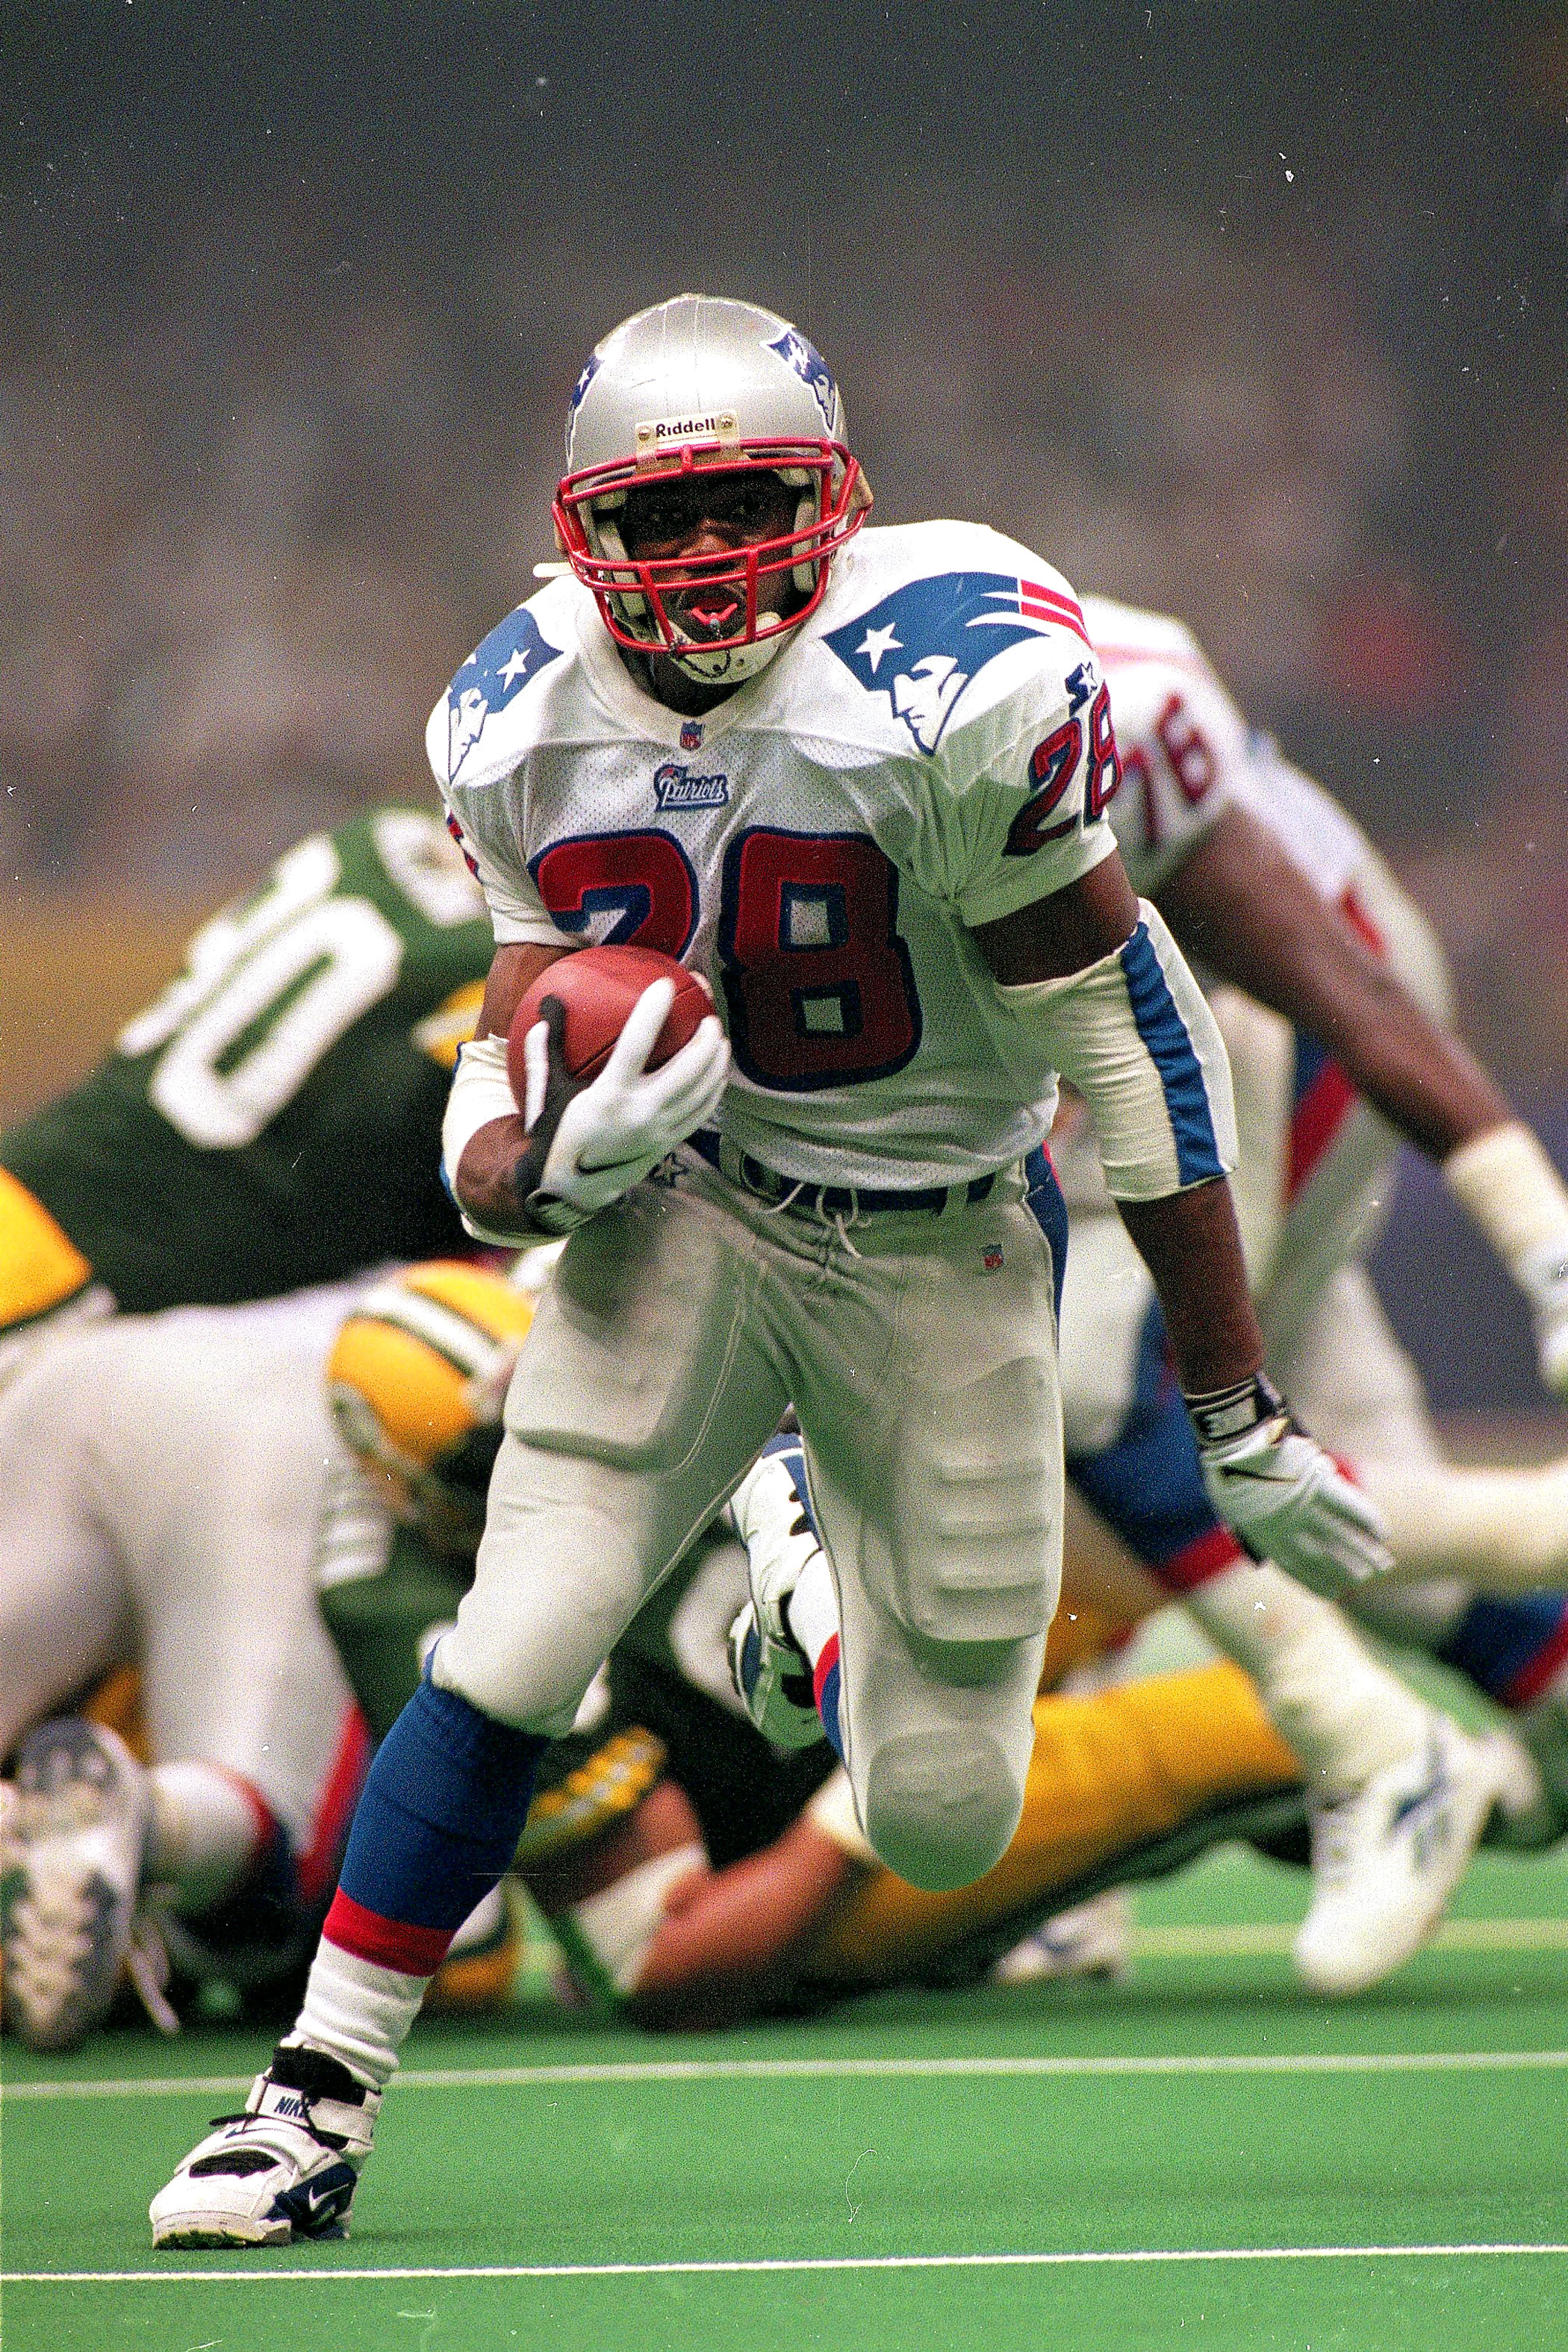 Super Bowl XXXI, Jan. 26, 1997                               New England Patriots vs. Green Bay Packers in New Orleans